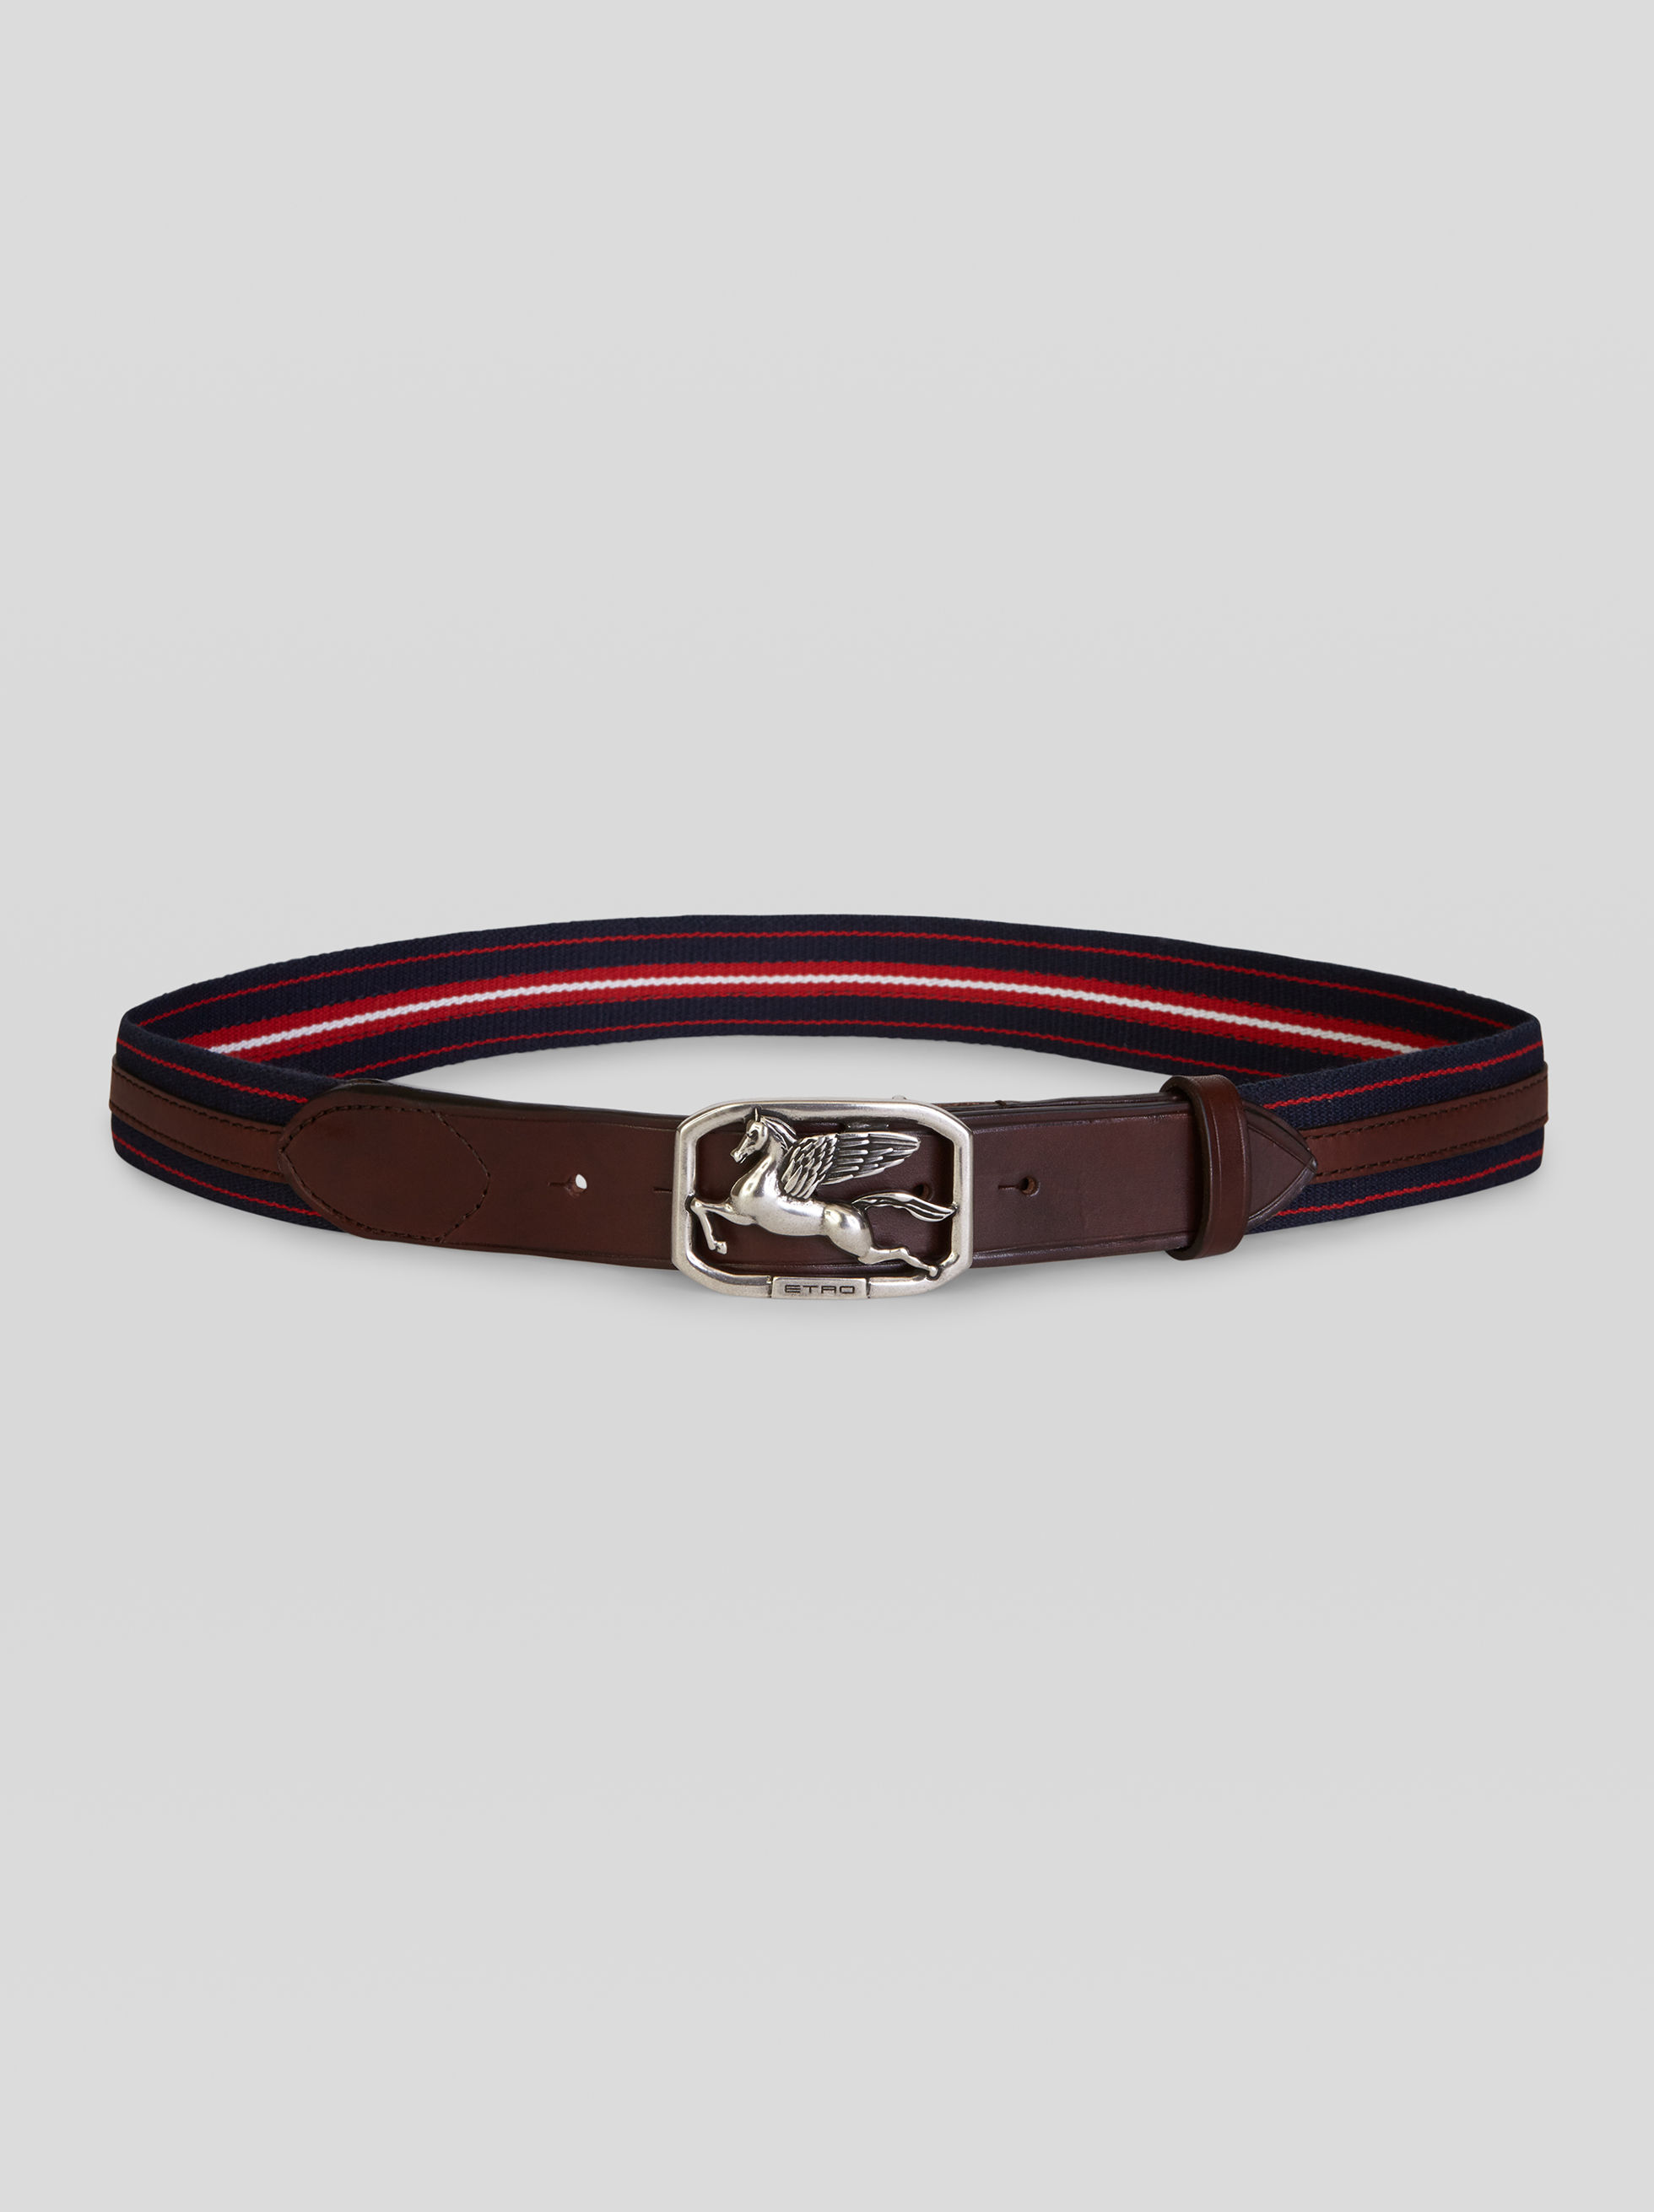 FABRIC BELT WITH LEATHER DETAILS